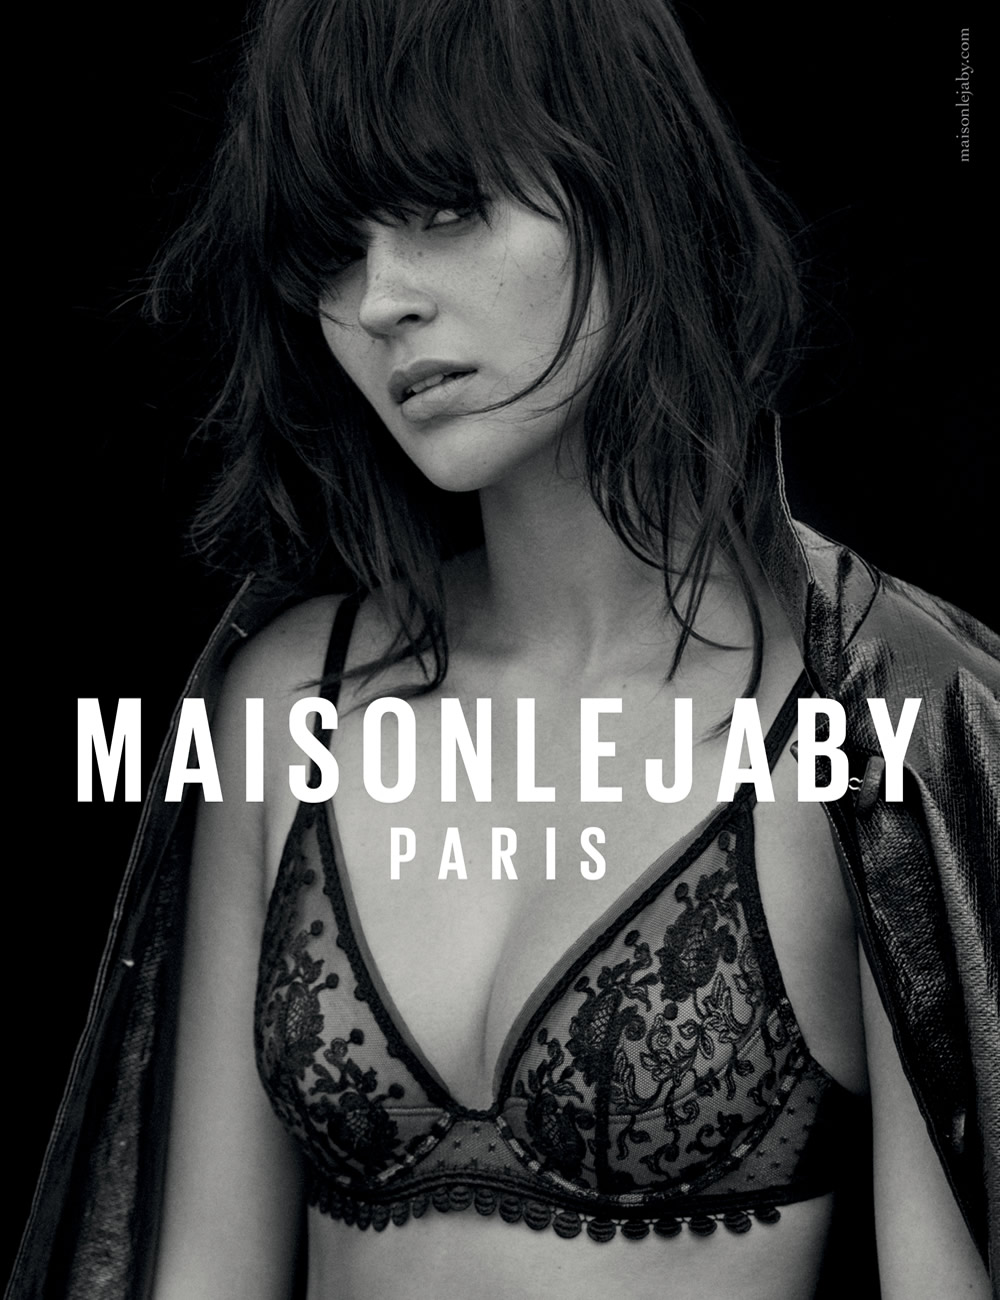 Maisonly Jabe Paris